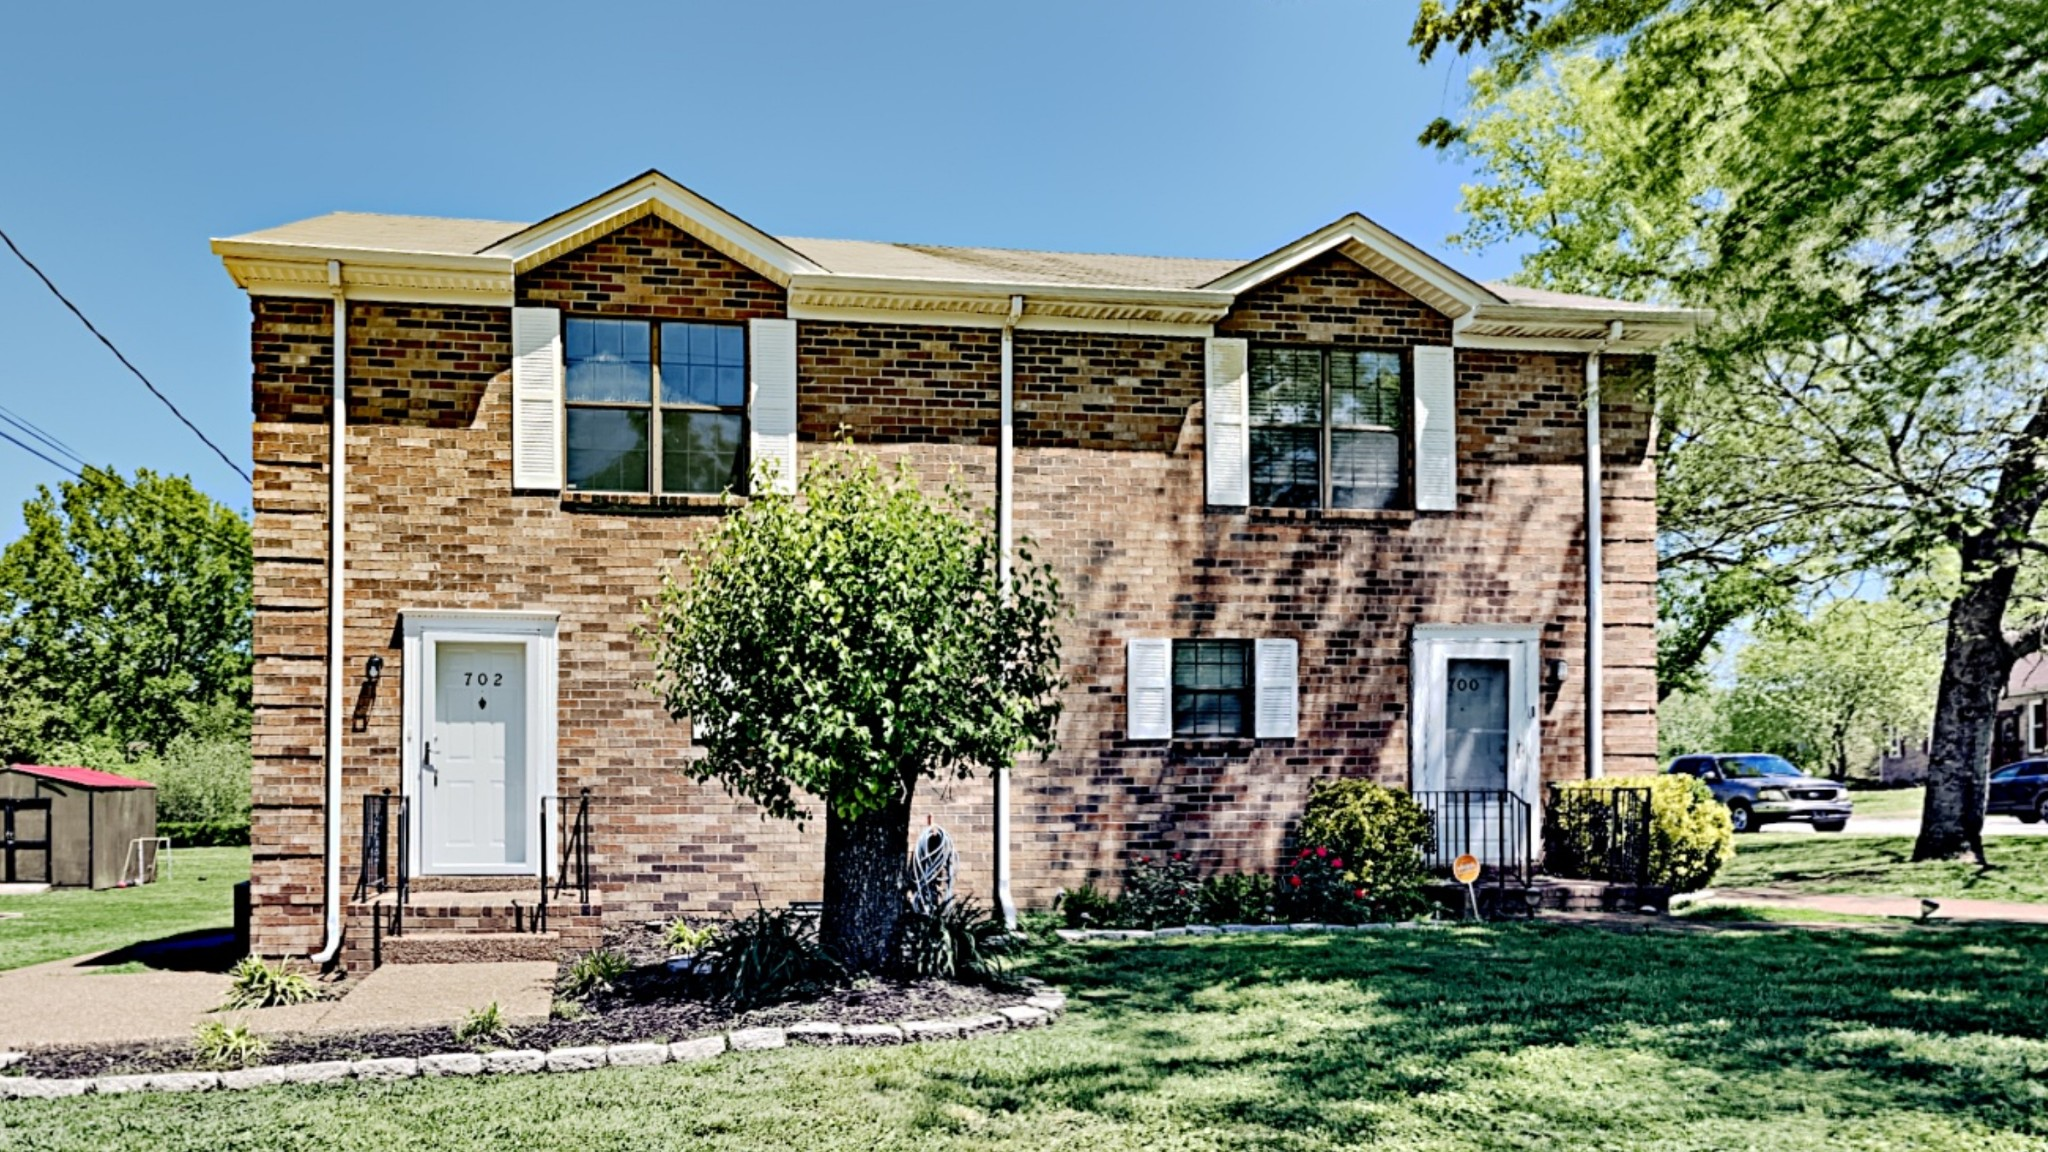 702 Clearwater Ct Property Photo - Nashville, TN real estate listing